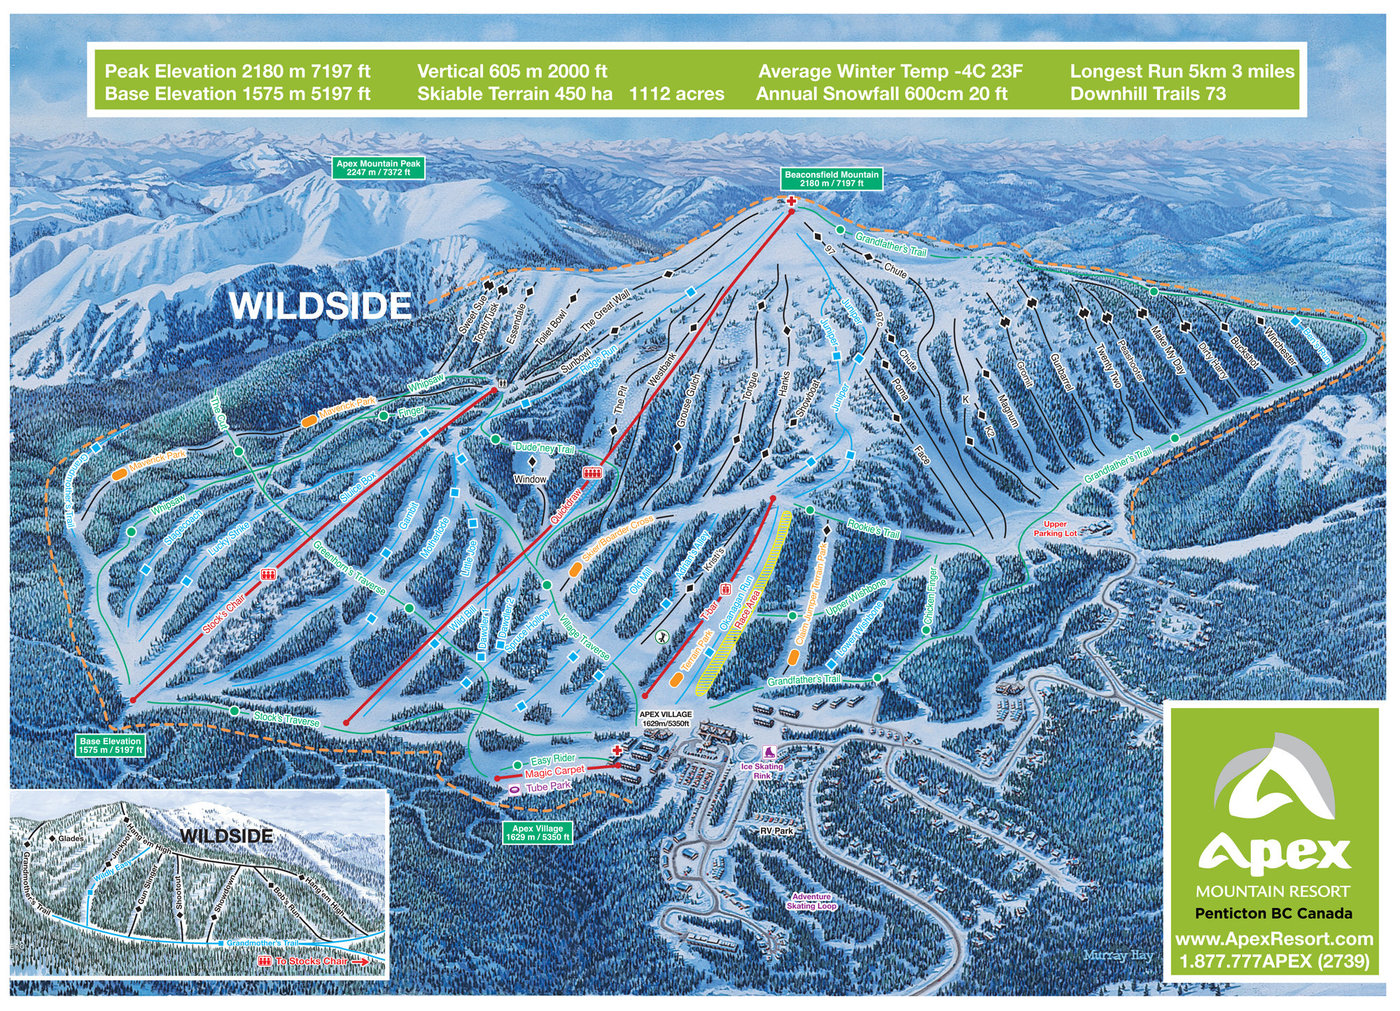 Apex Mountain Resort Trail Map